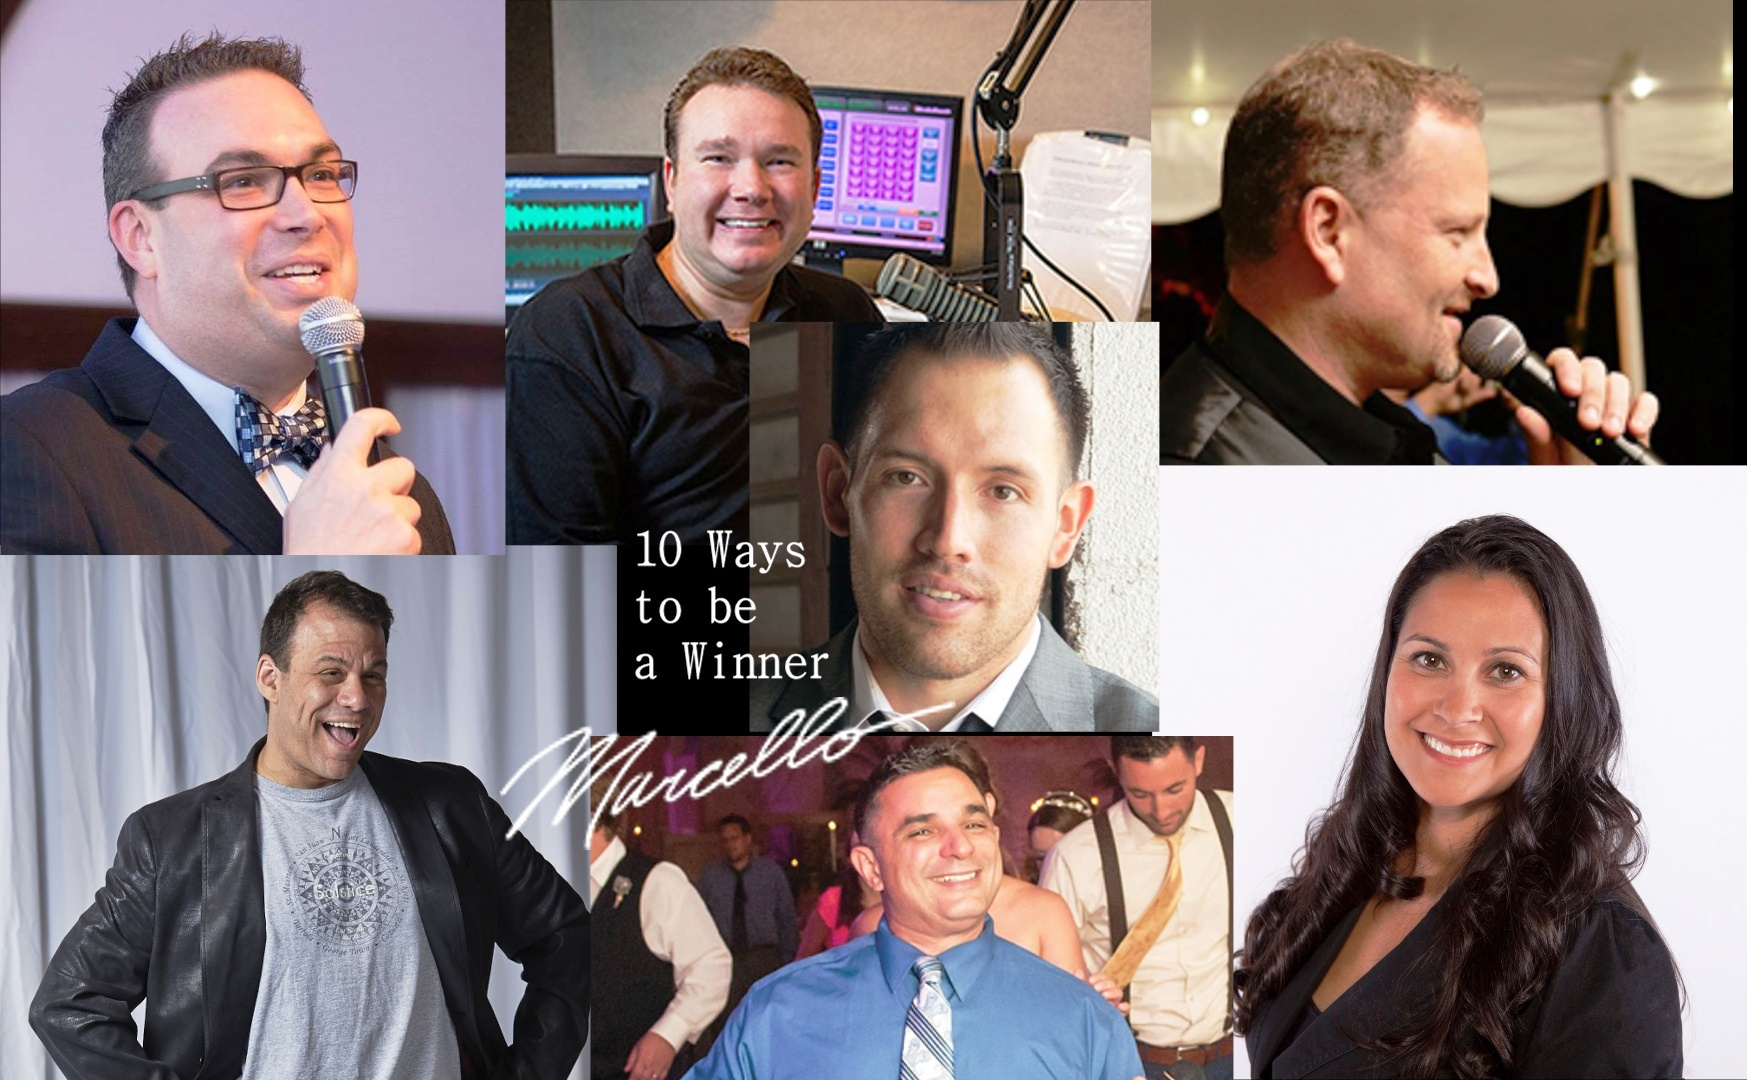 10 Ways To Be A Winner: Dj of the Year Insights from Marcello Pedalino with Pascal Levesque, Adam Weitz, Steve Mood, Jazmine Gonzalez Bumpass, Darryl Jake Jacobsen, Jack Bermeo, Vinny Liotta